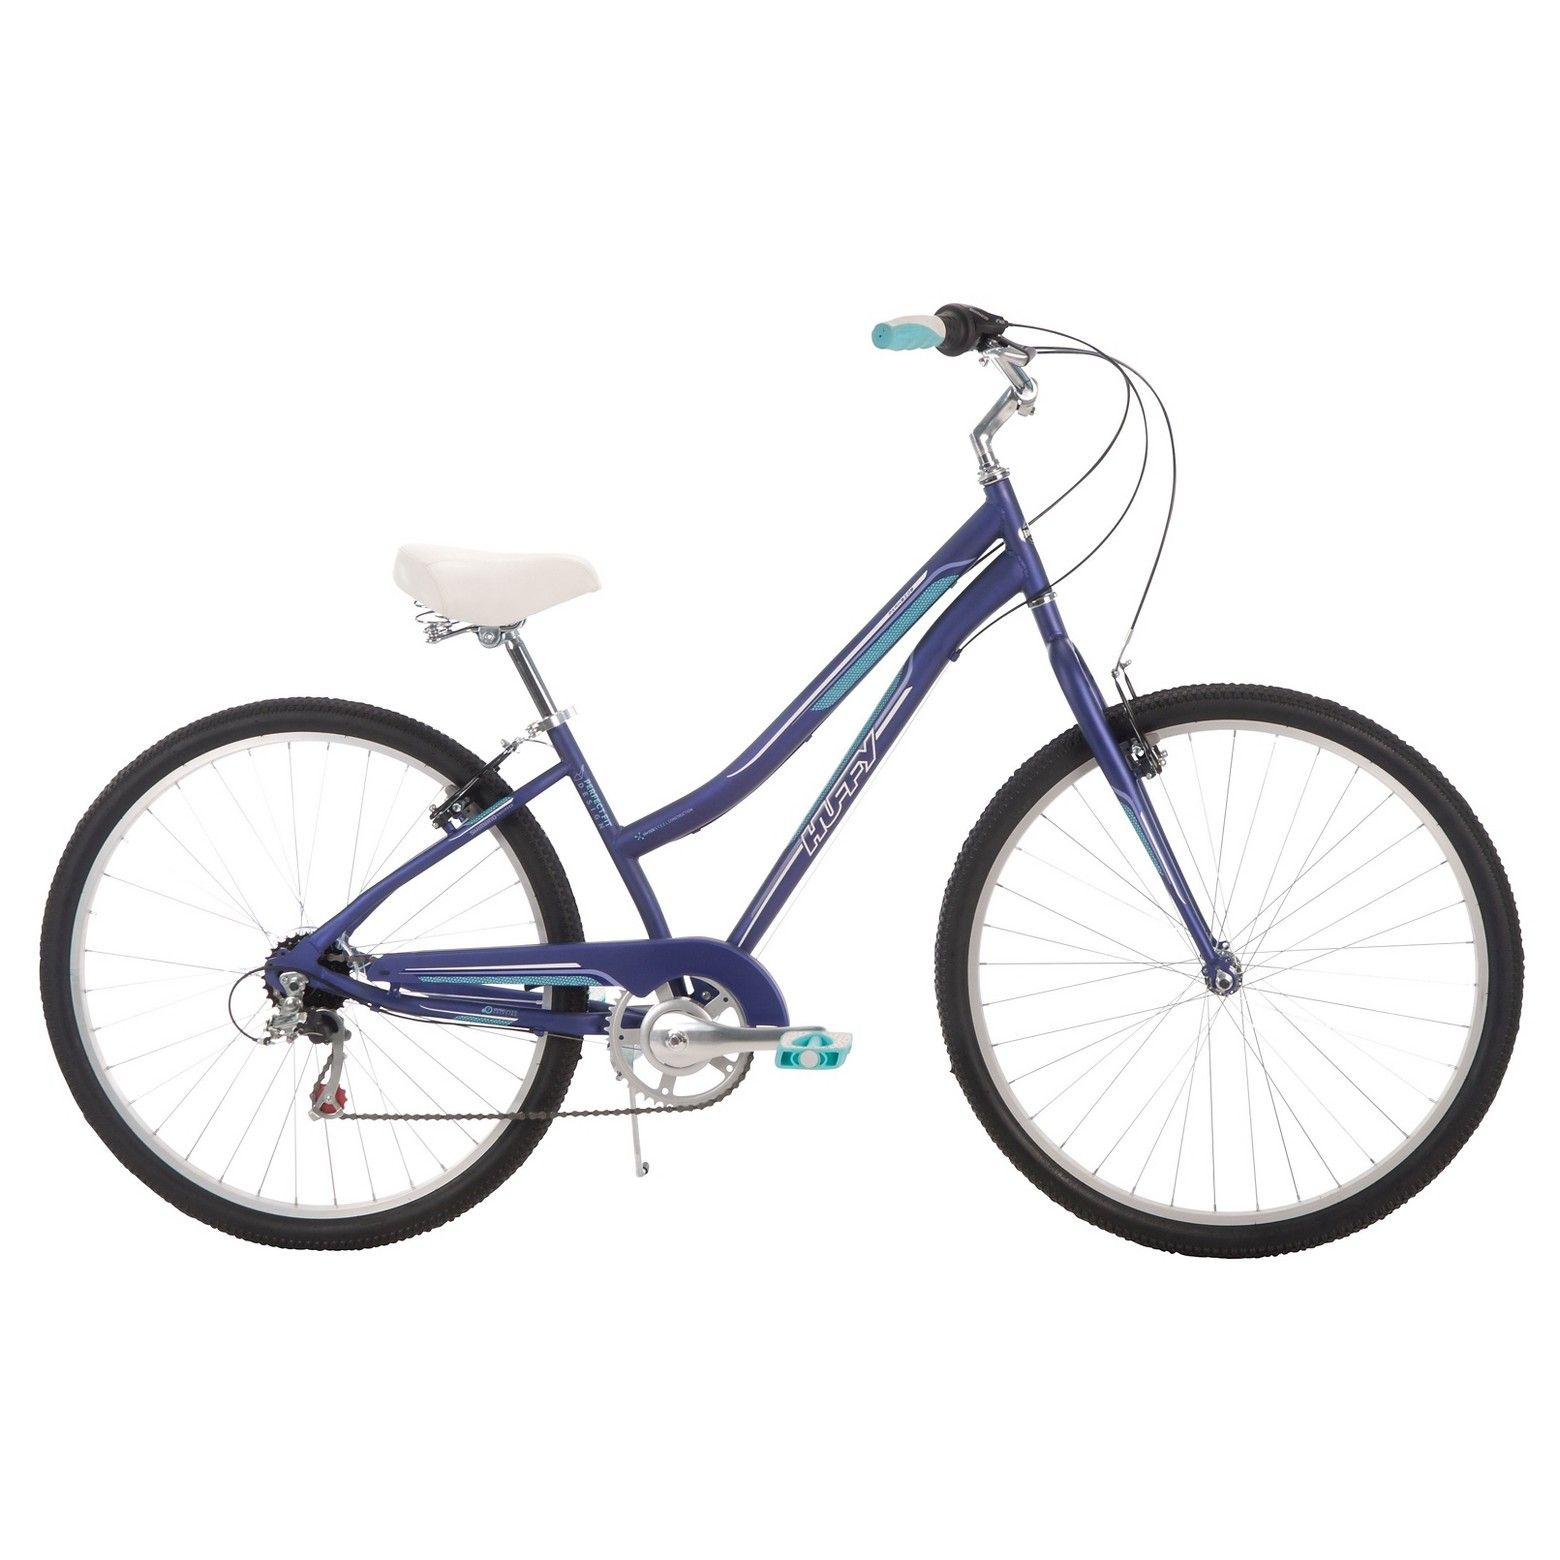 Navigate The Busy Streets On Your Next Ride With The Huffy